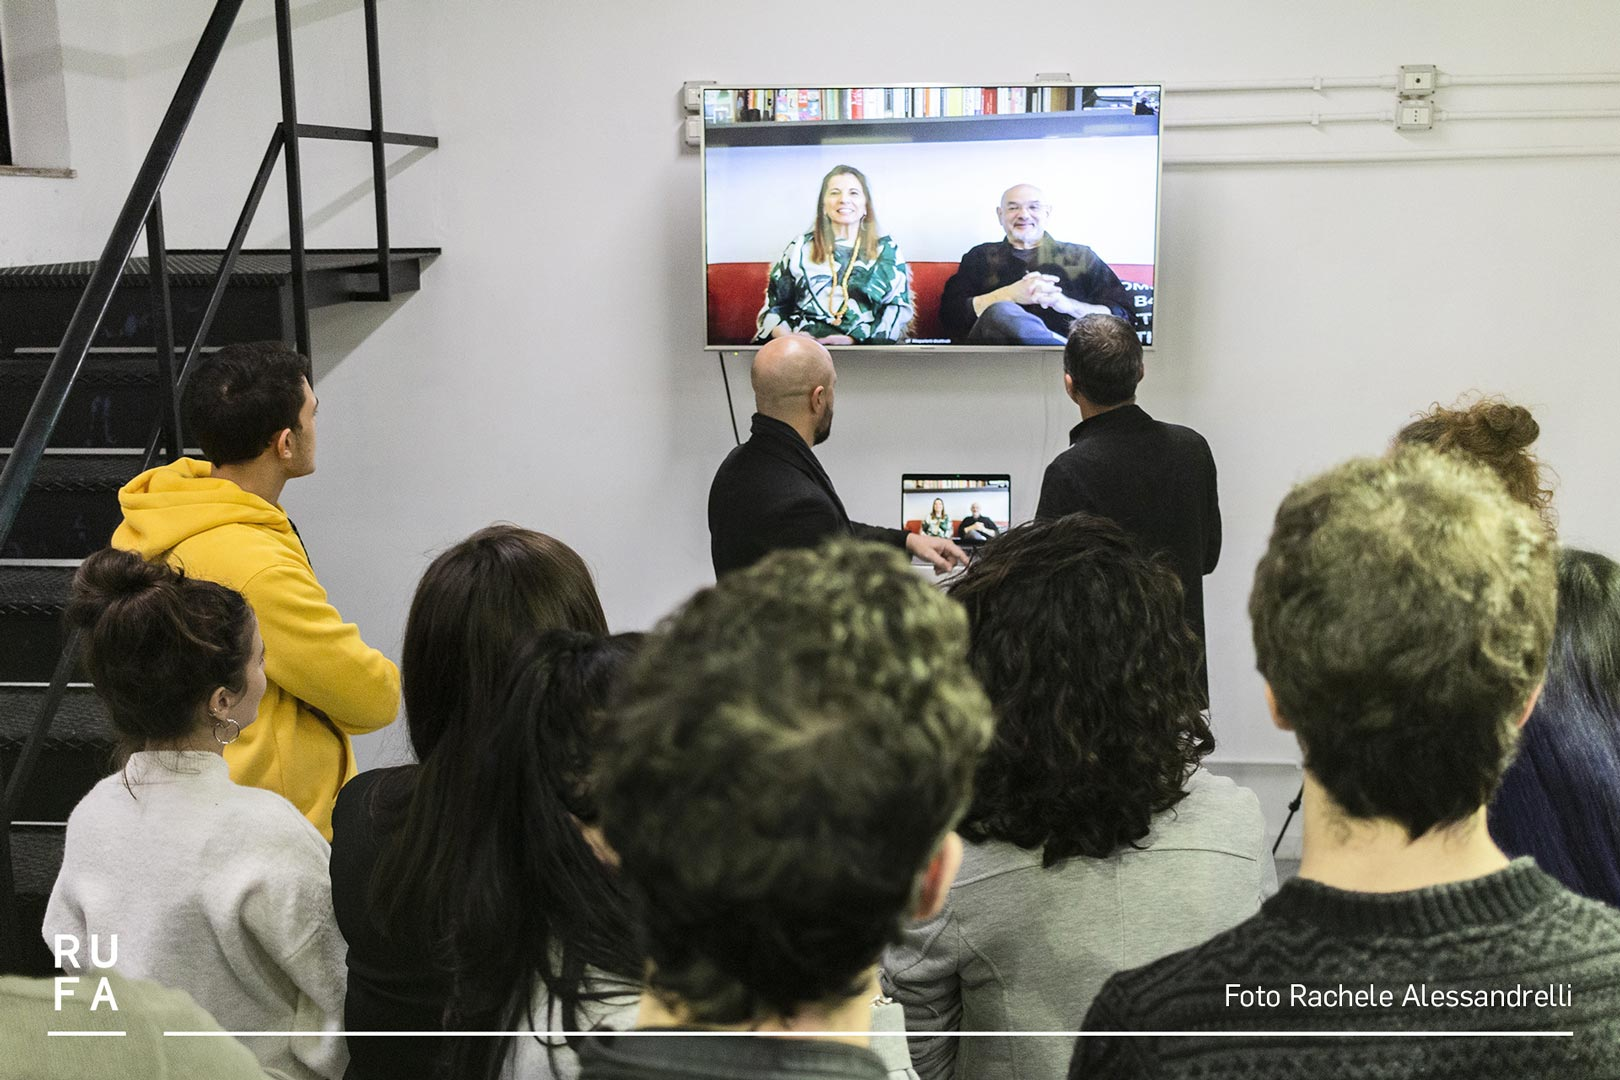 Steve Heller and Lita Talarico video chatting with people through TV